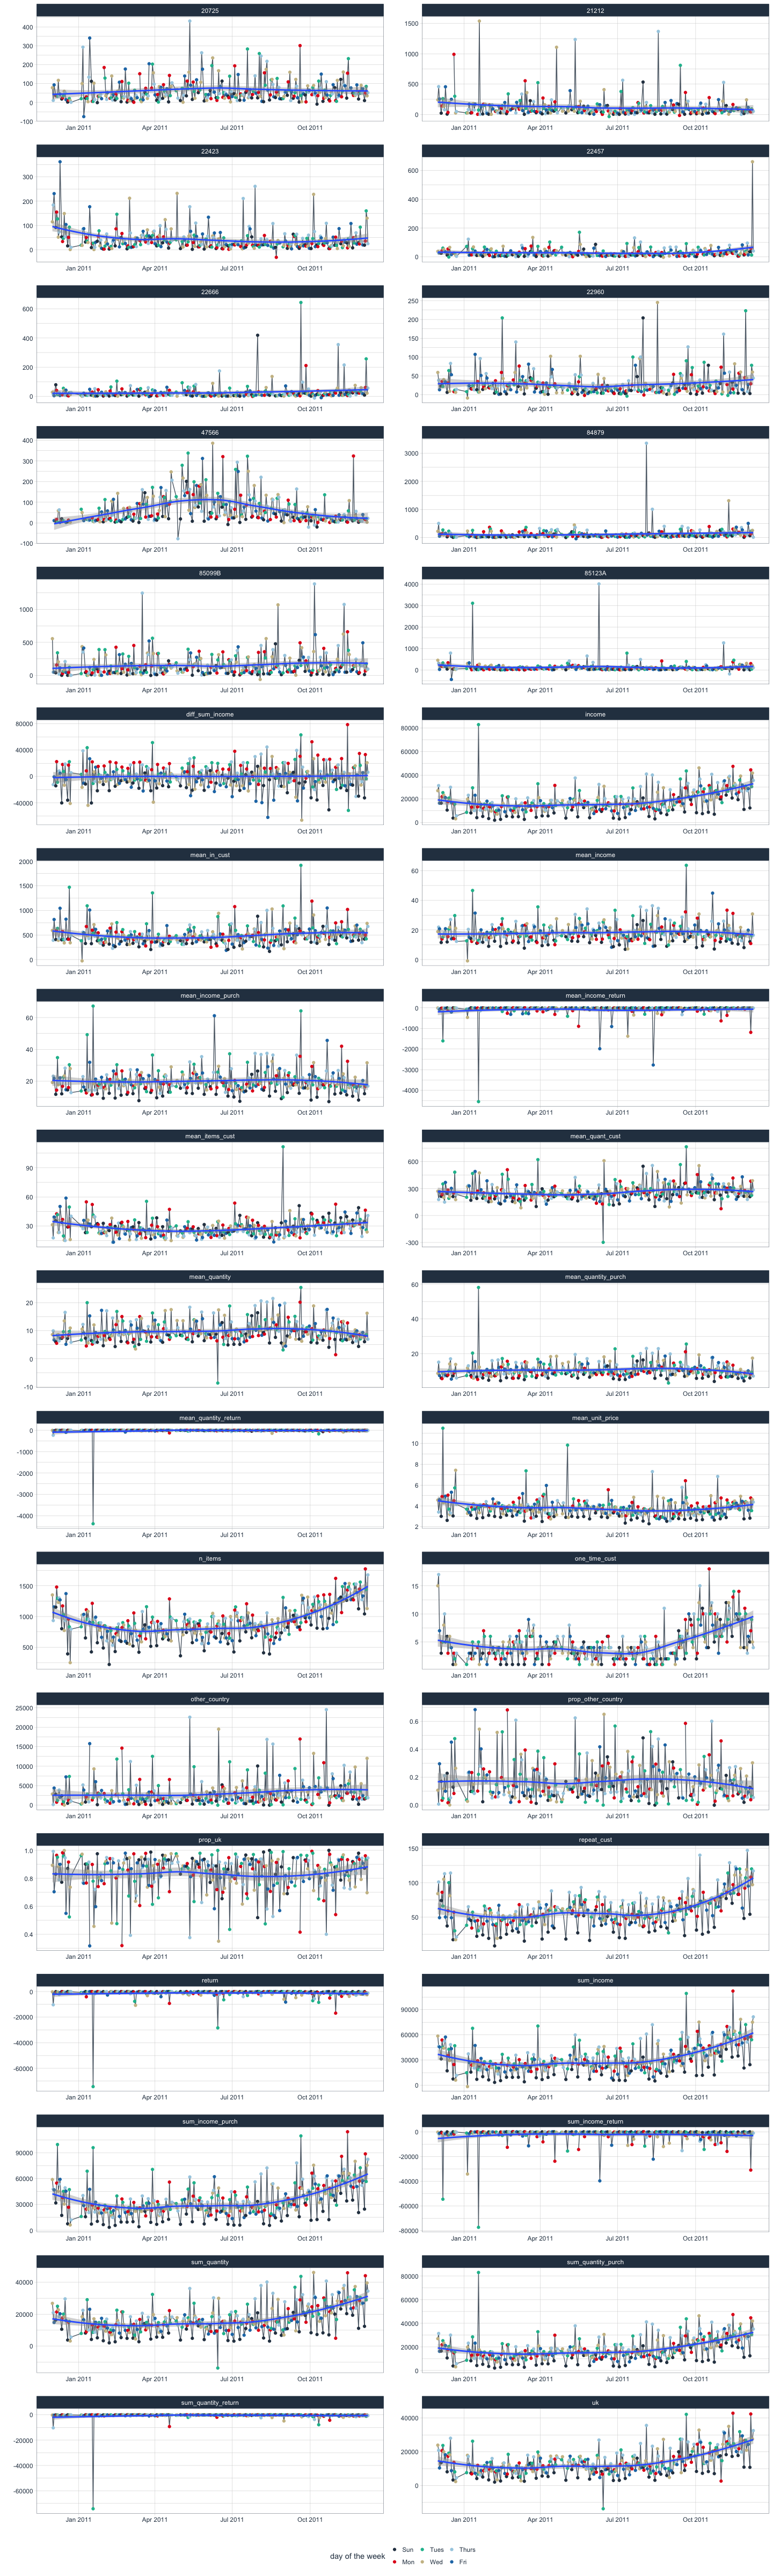 Data Science for Business - Time Series Forecasting Part 1: EDA